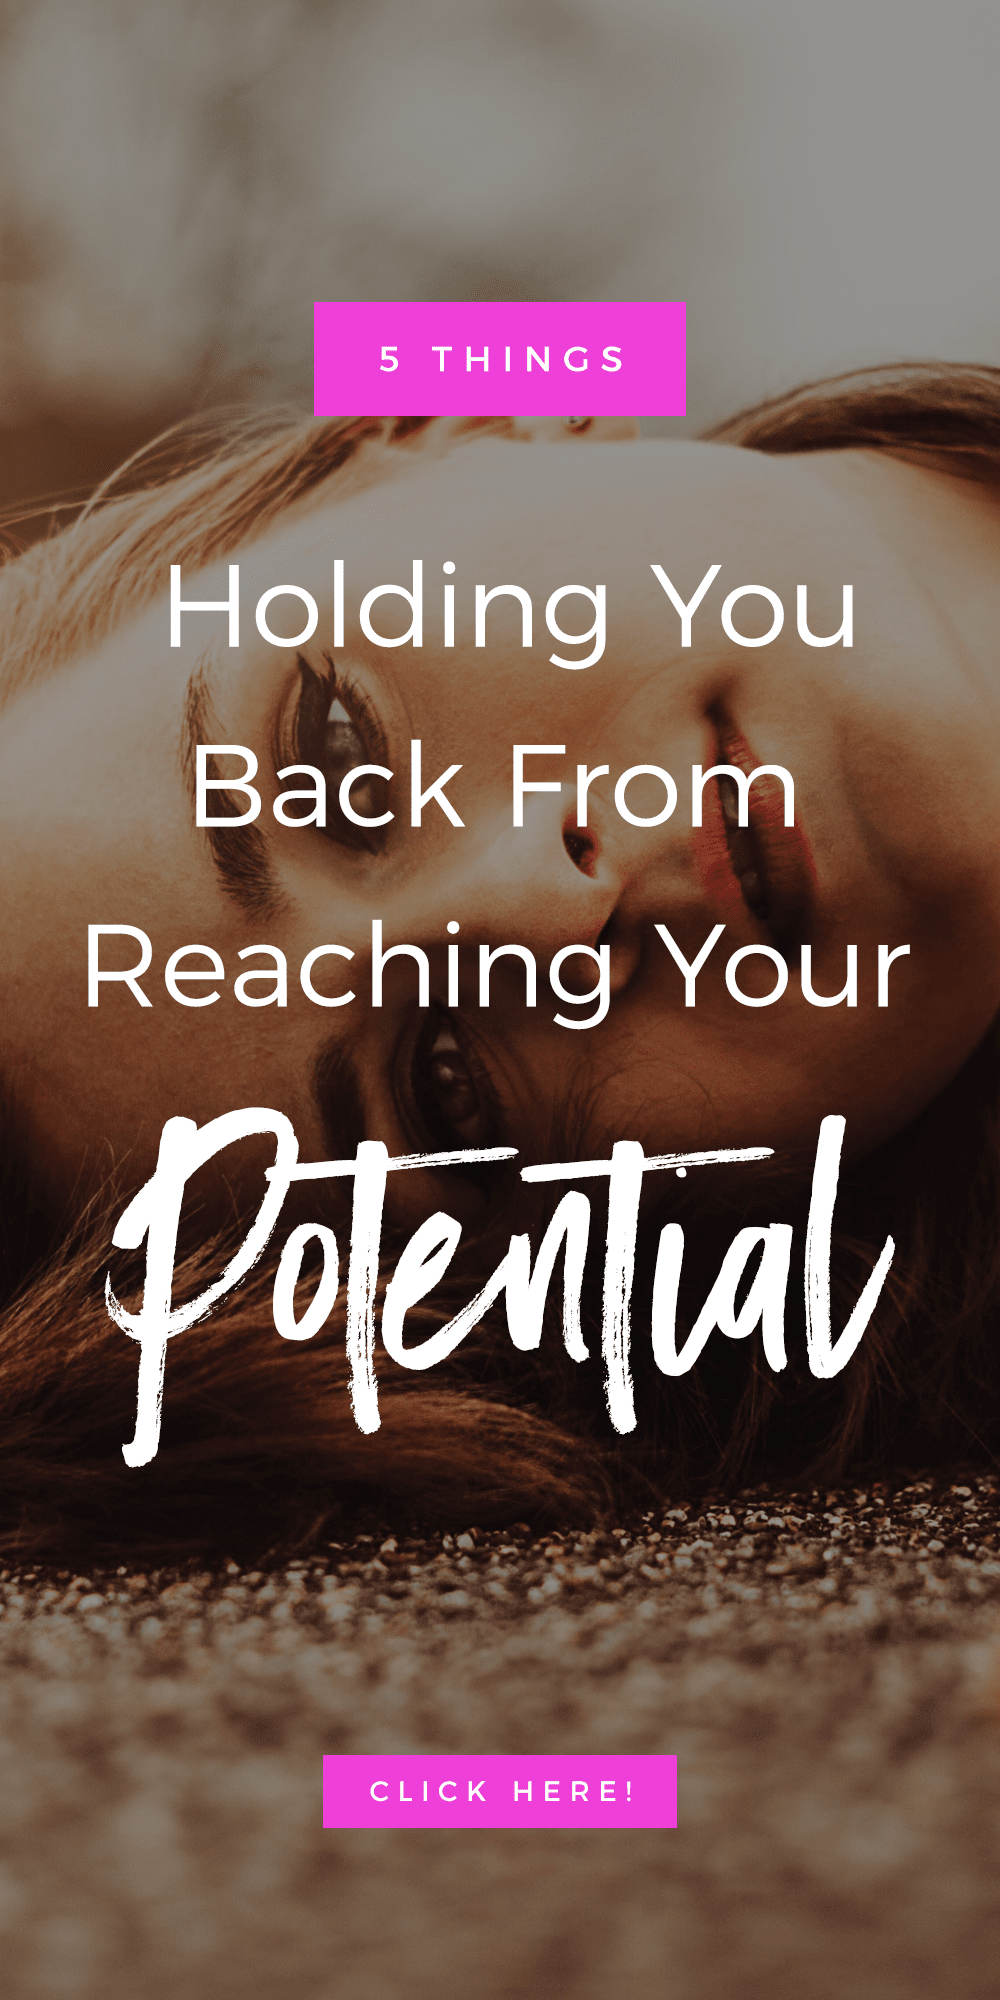 5 Things That Are Holding You Back From Reaching Your Full Potential